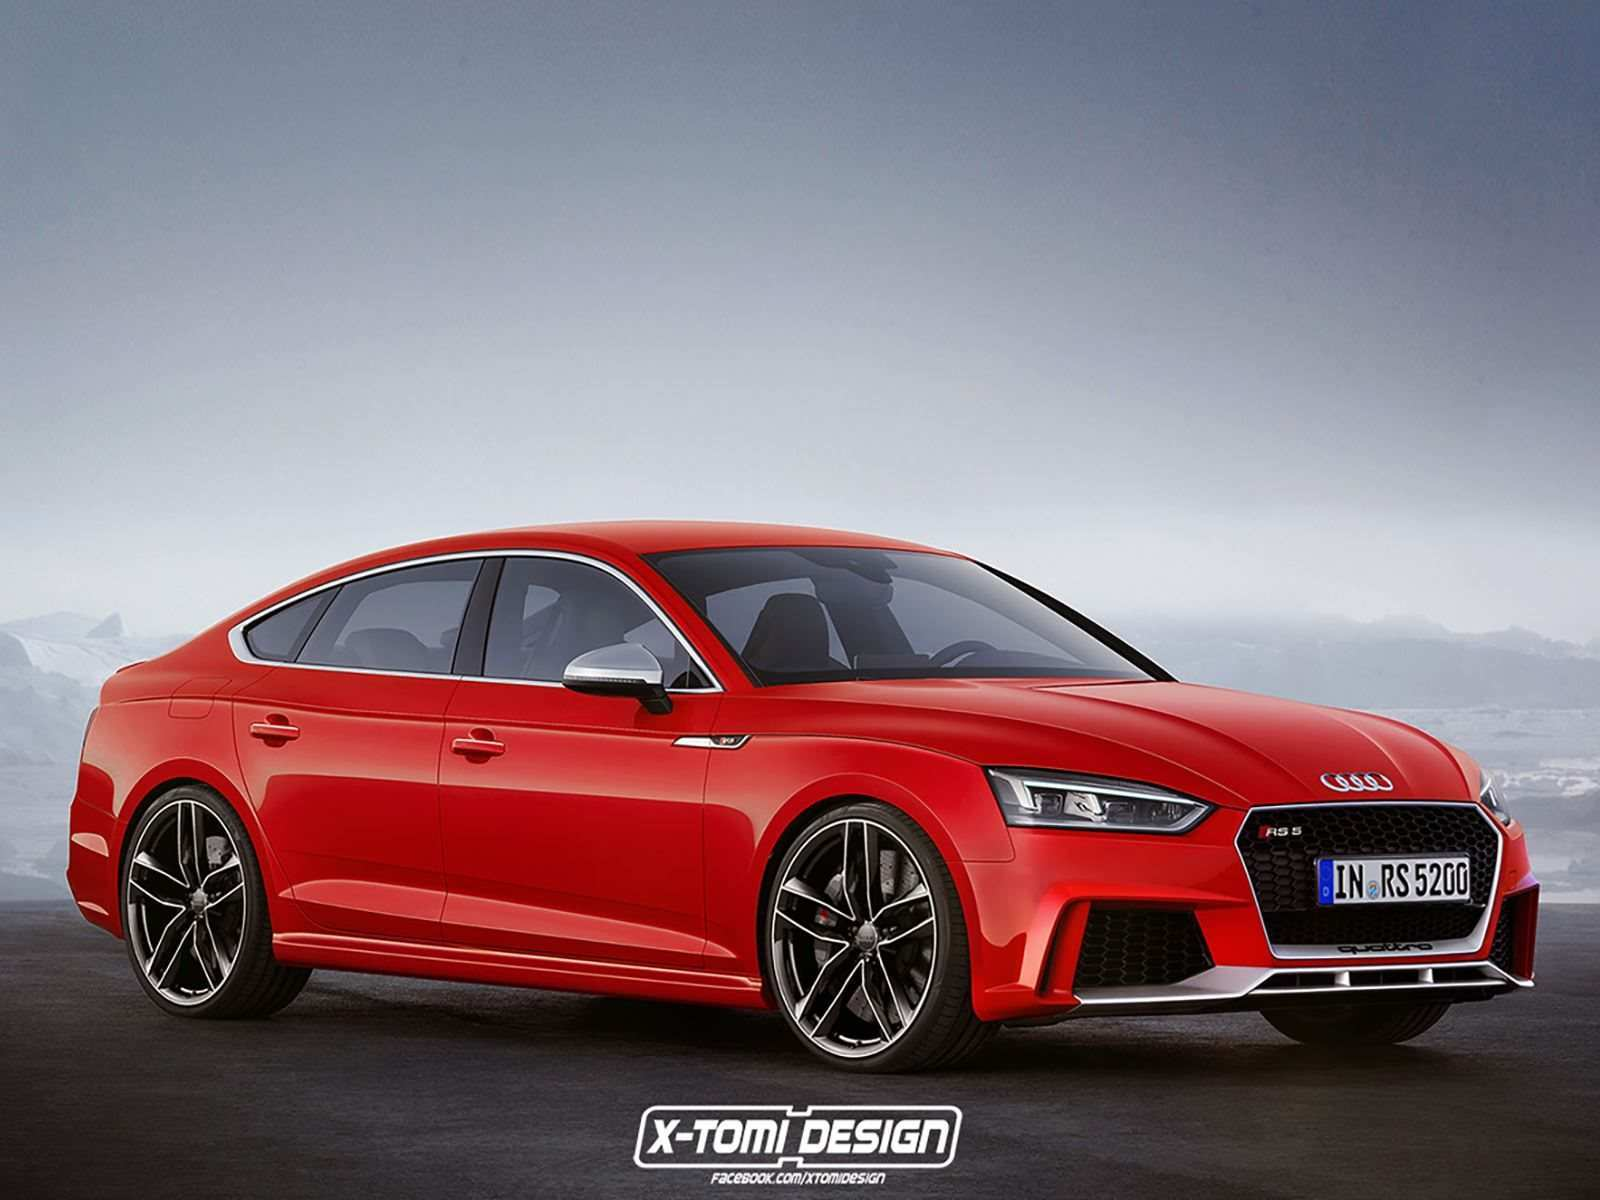 47 Concept of 2020 Audi Rs5 Spy Shoot for 2020 Audi Rs5